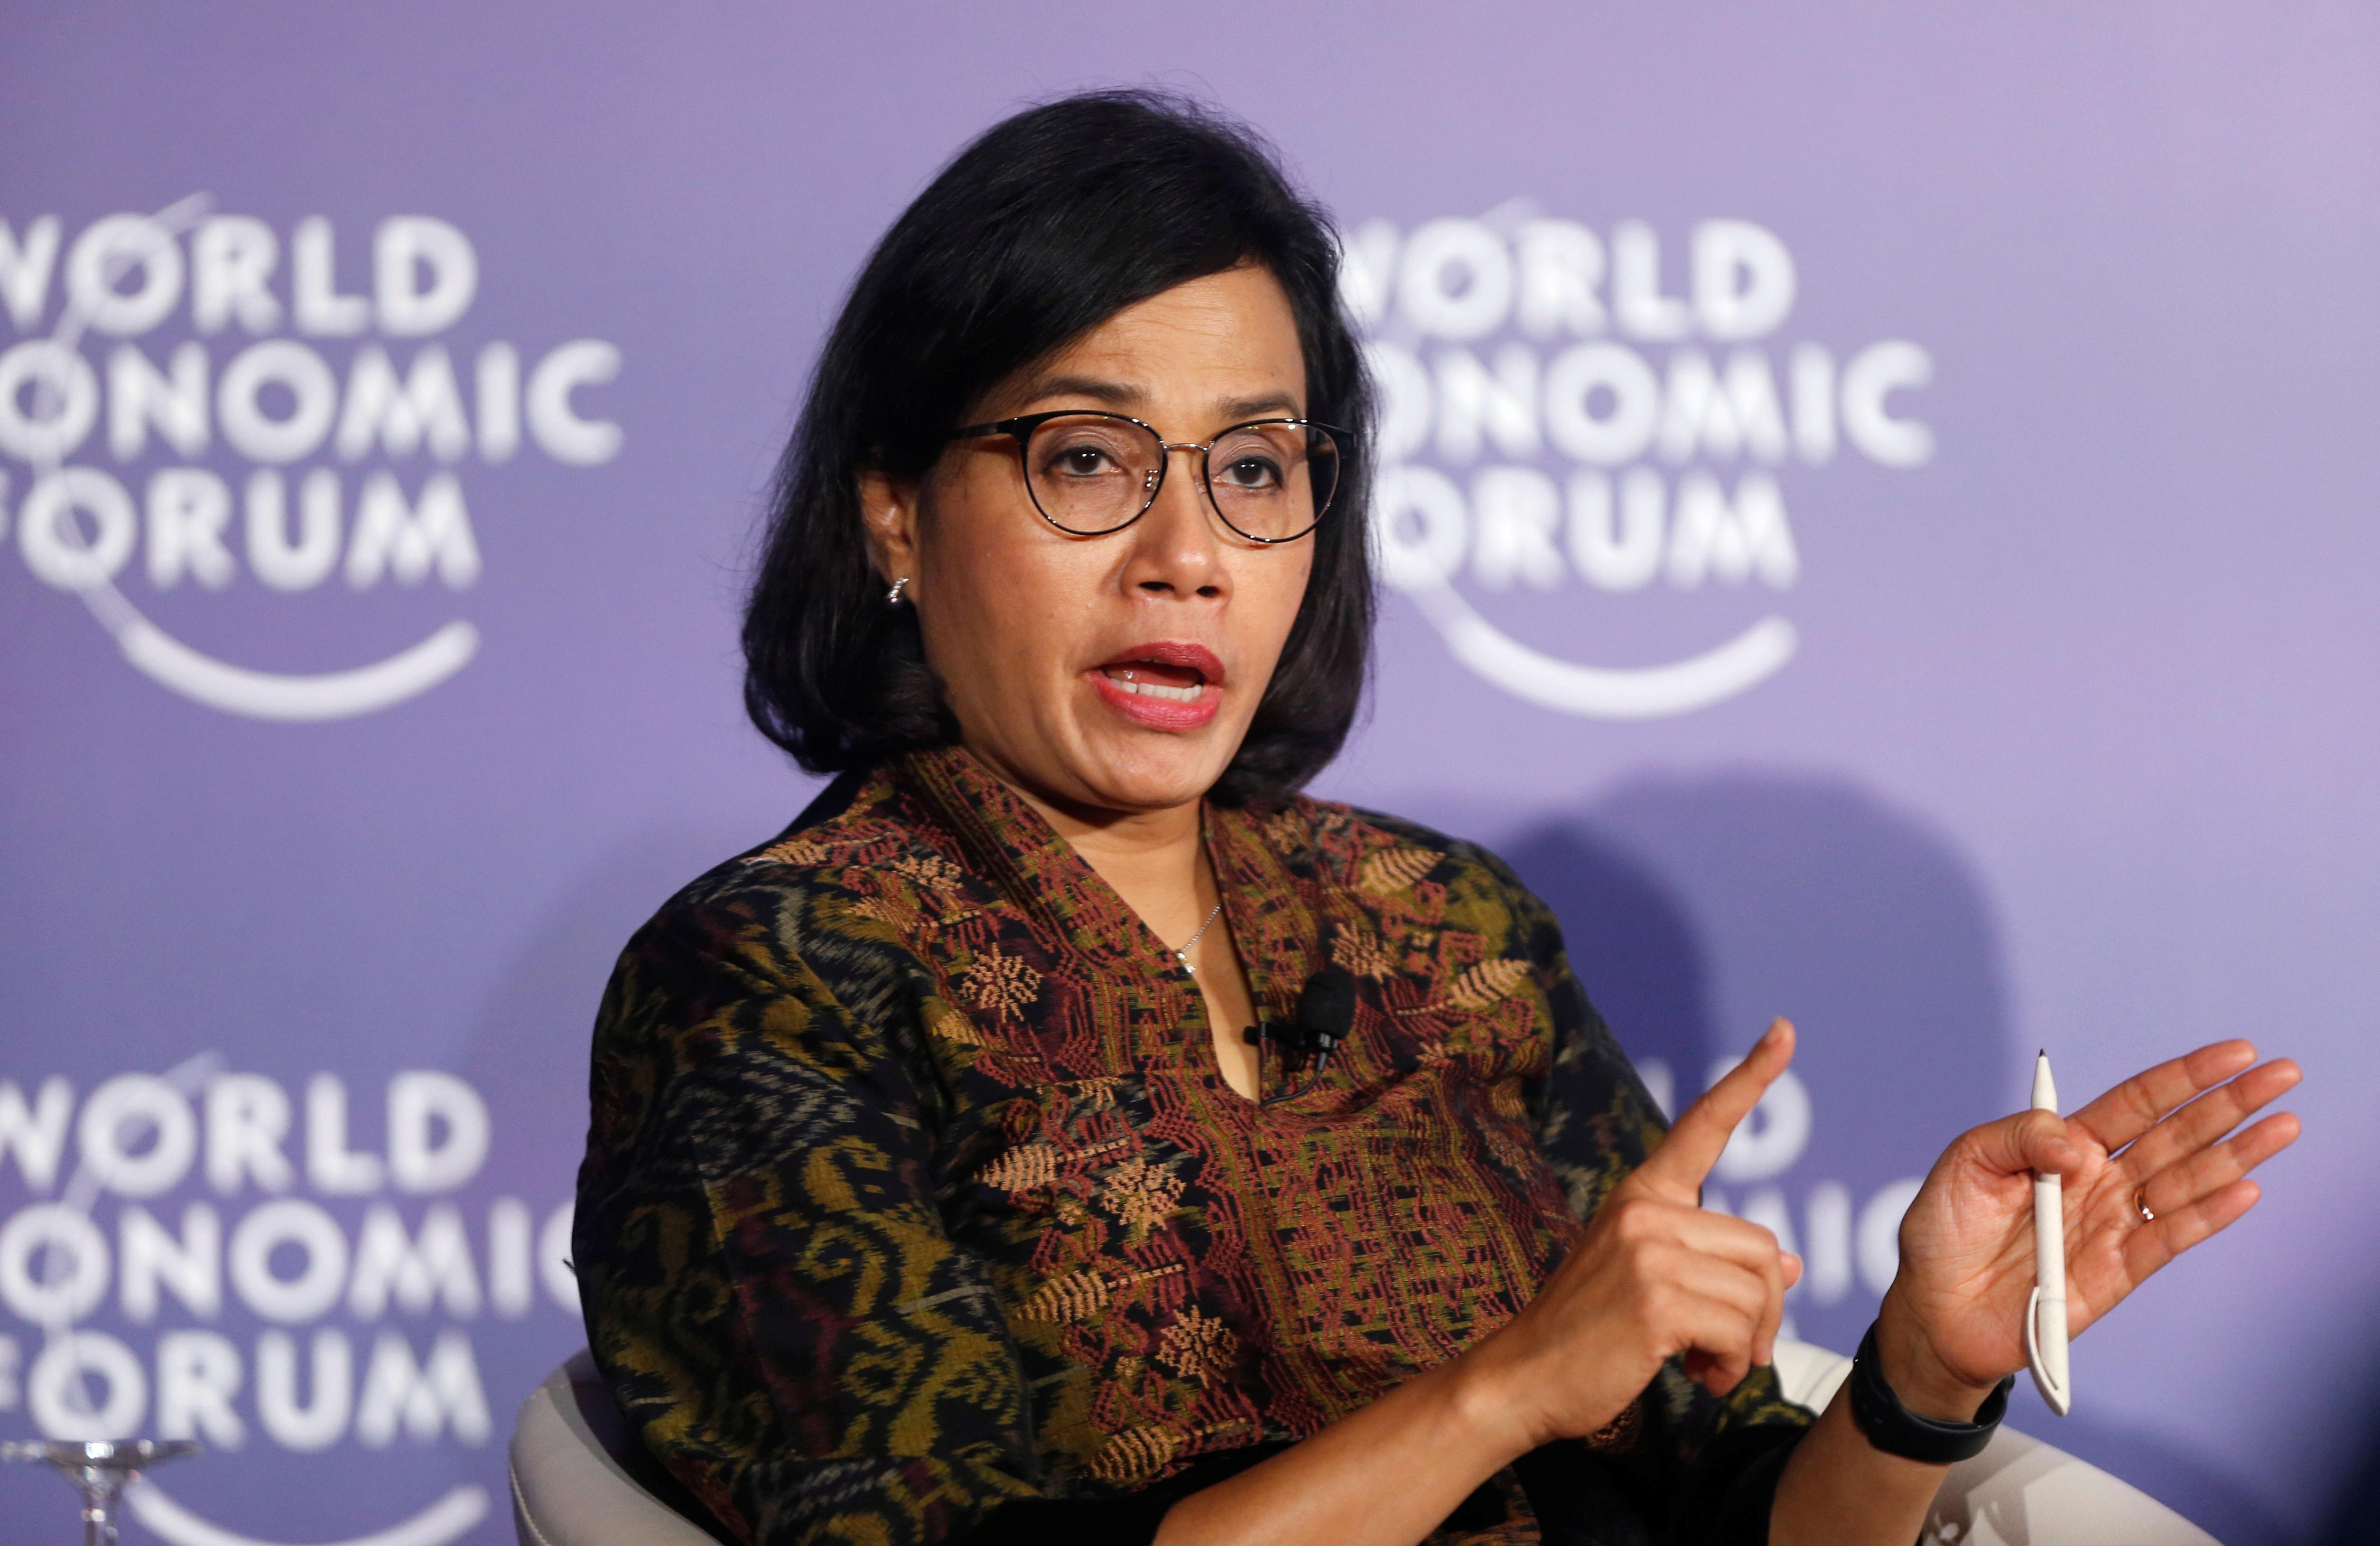 Indonesia finance minister defends plan to raise cigarette prices